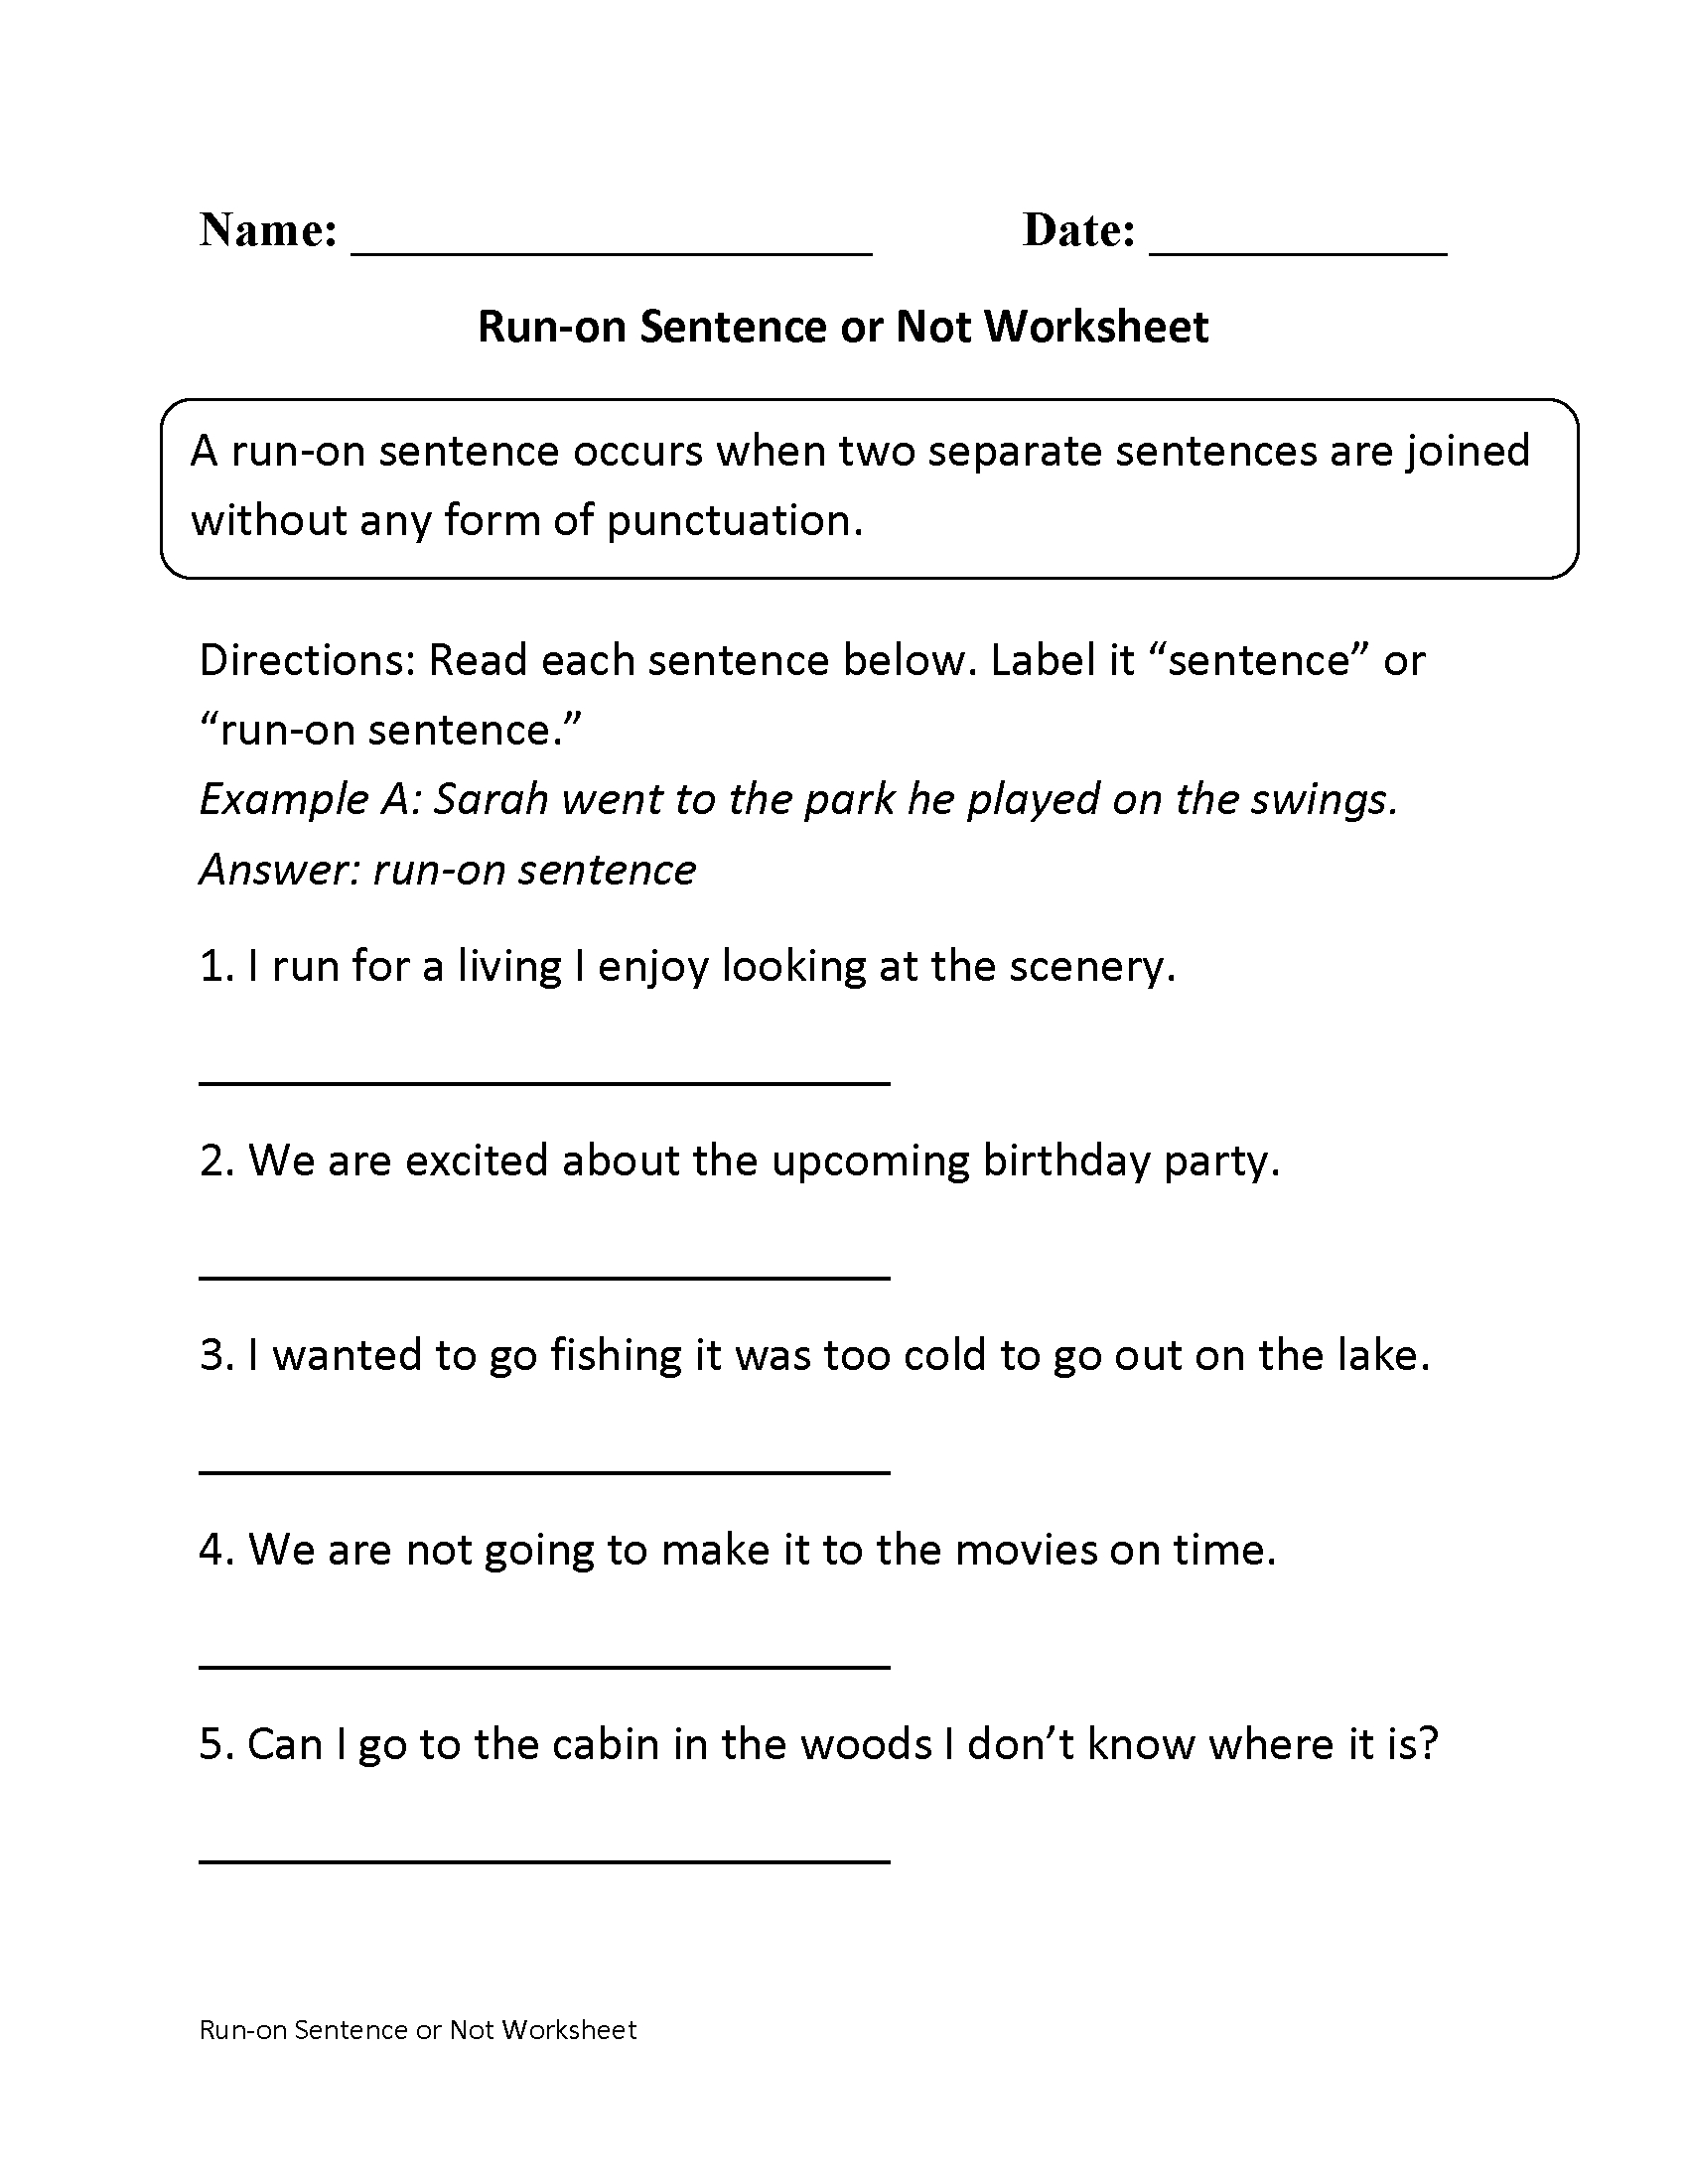 Sentences Worksheets | Run On Sentences Worksheets - Free Printable | Free Printable Sentence Correction Worksheets